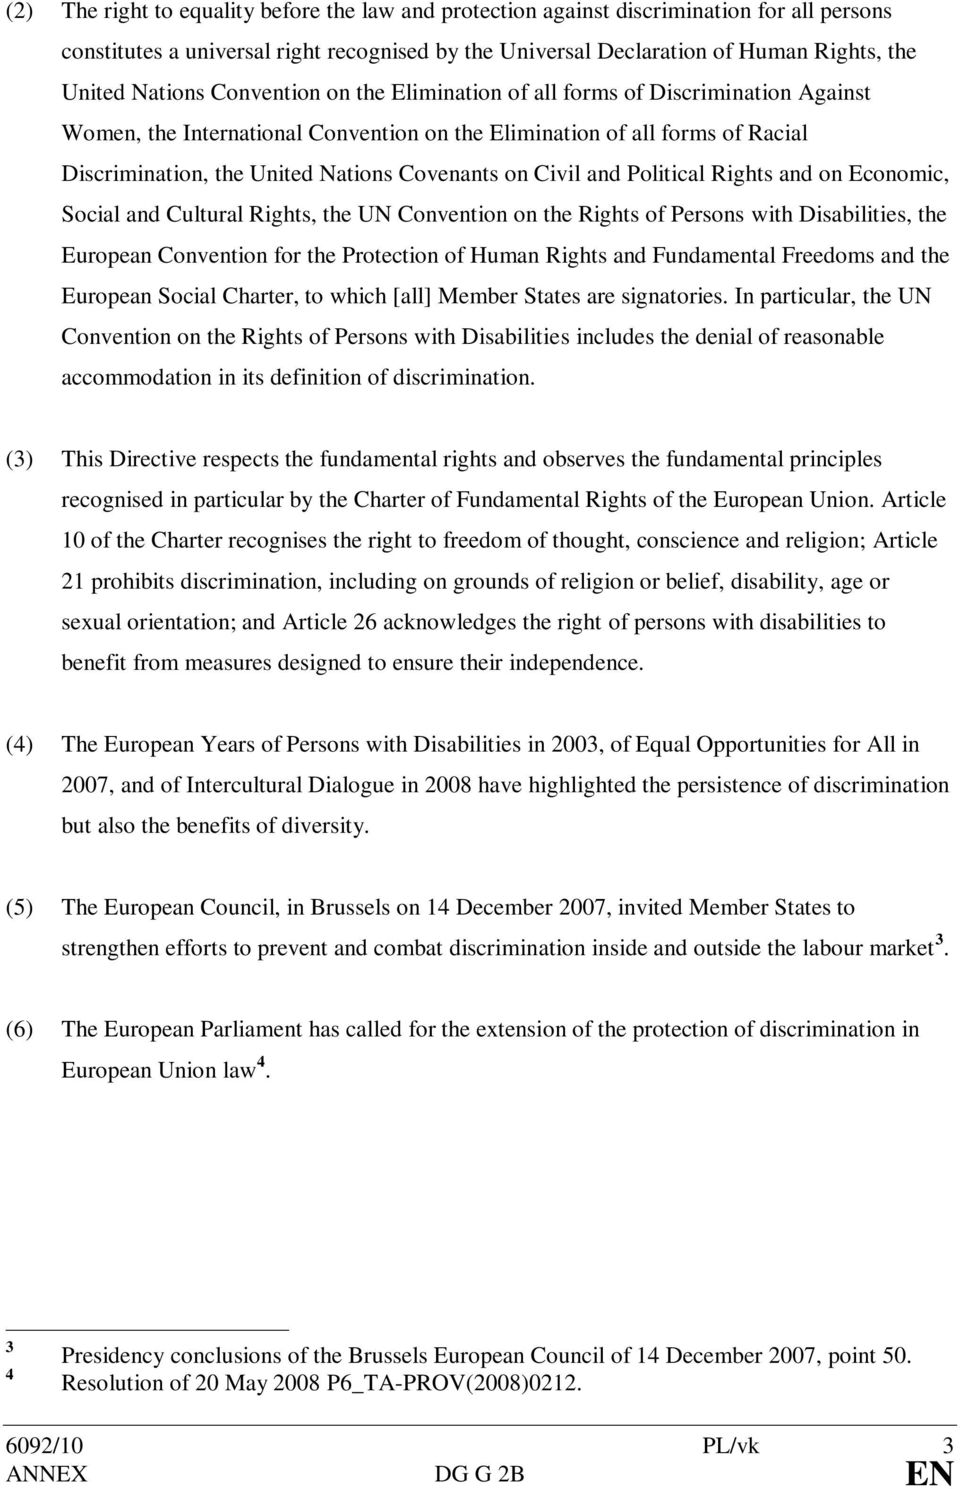 on Civil and Political Rights and on Economic, Social and Cultural Rights, the UN Convention on the Rights of Persons with Disabilities, the European Convention for the Protection of Human Rights and